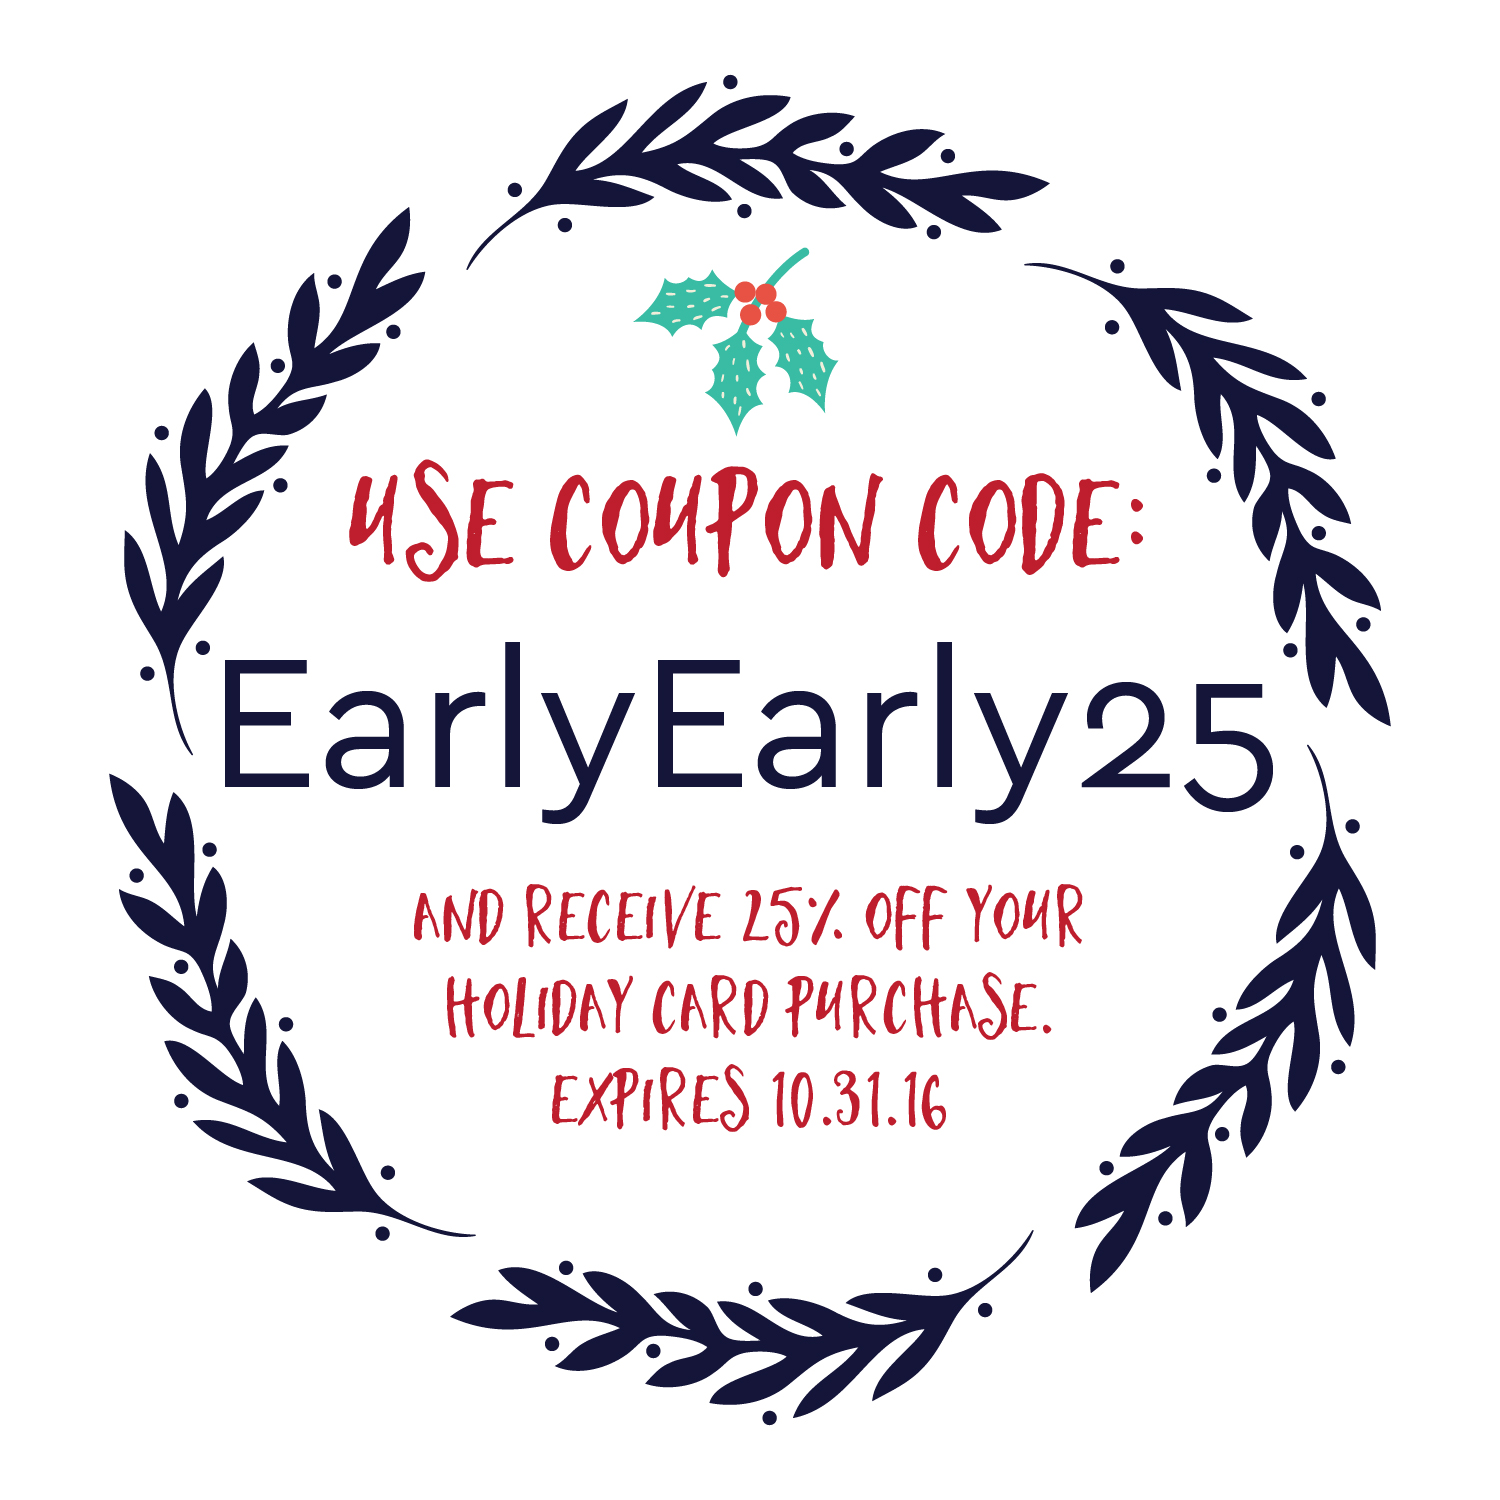 Bta designs and for all your early birds if you order between now and 1031 you can receive 25 off your purchase by using coupon code earlyearly25 fandeluxe Images